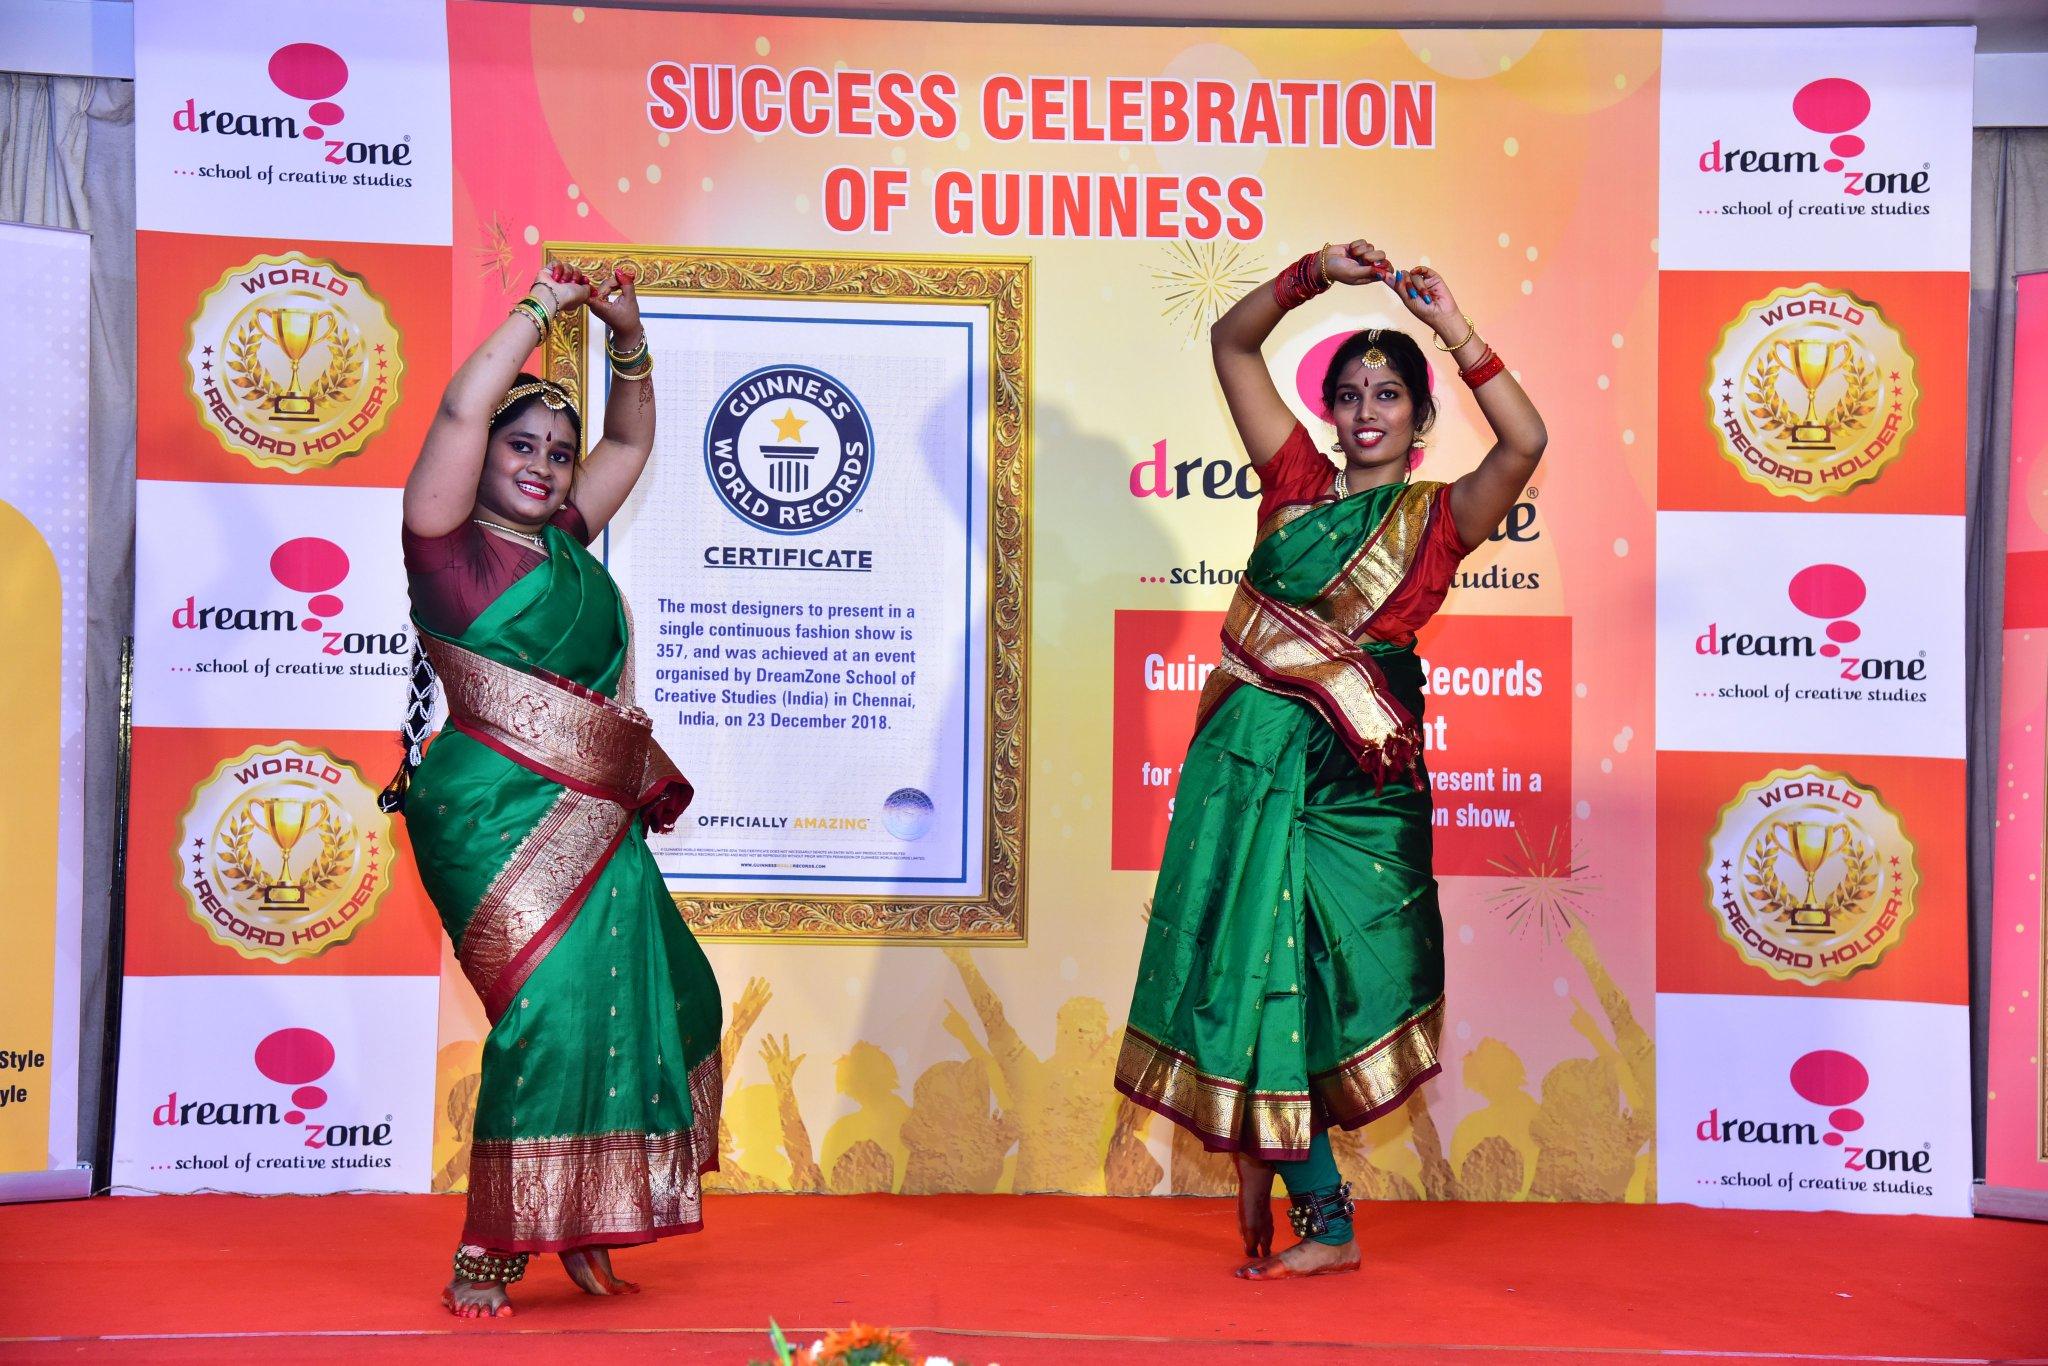 Dreamzone School Of Creative Studies On Twitter Dreamzone Celebrated The Mega Success Of Guinness Book Of World Record For Most Numbers Of Designers Showcase In A Single Continuous Fashion Show Dreamzone Schoolofdesigning